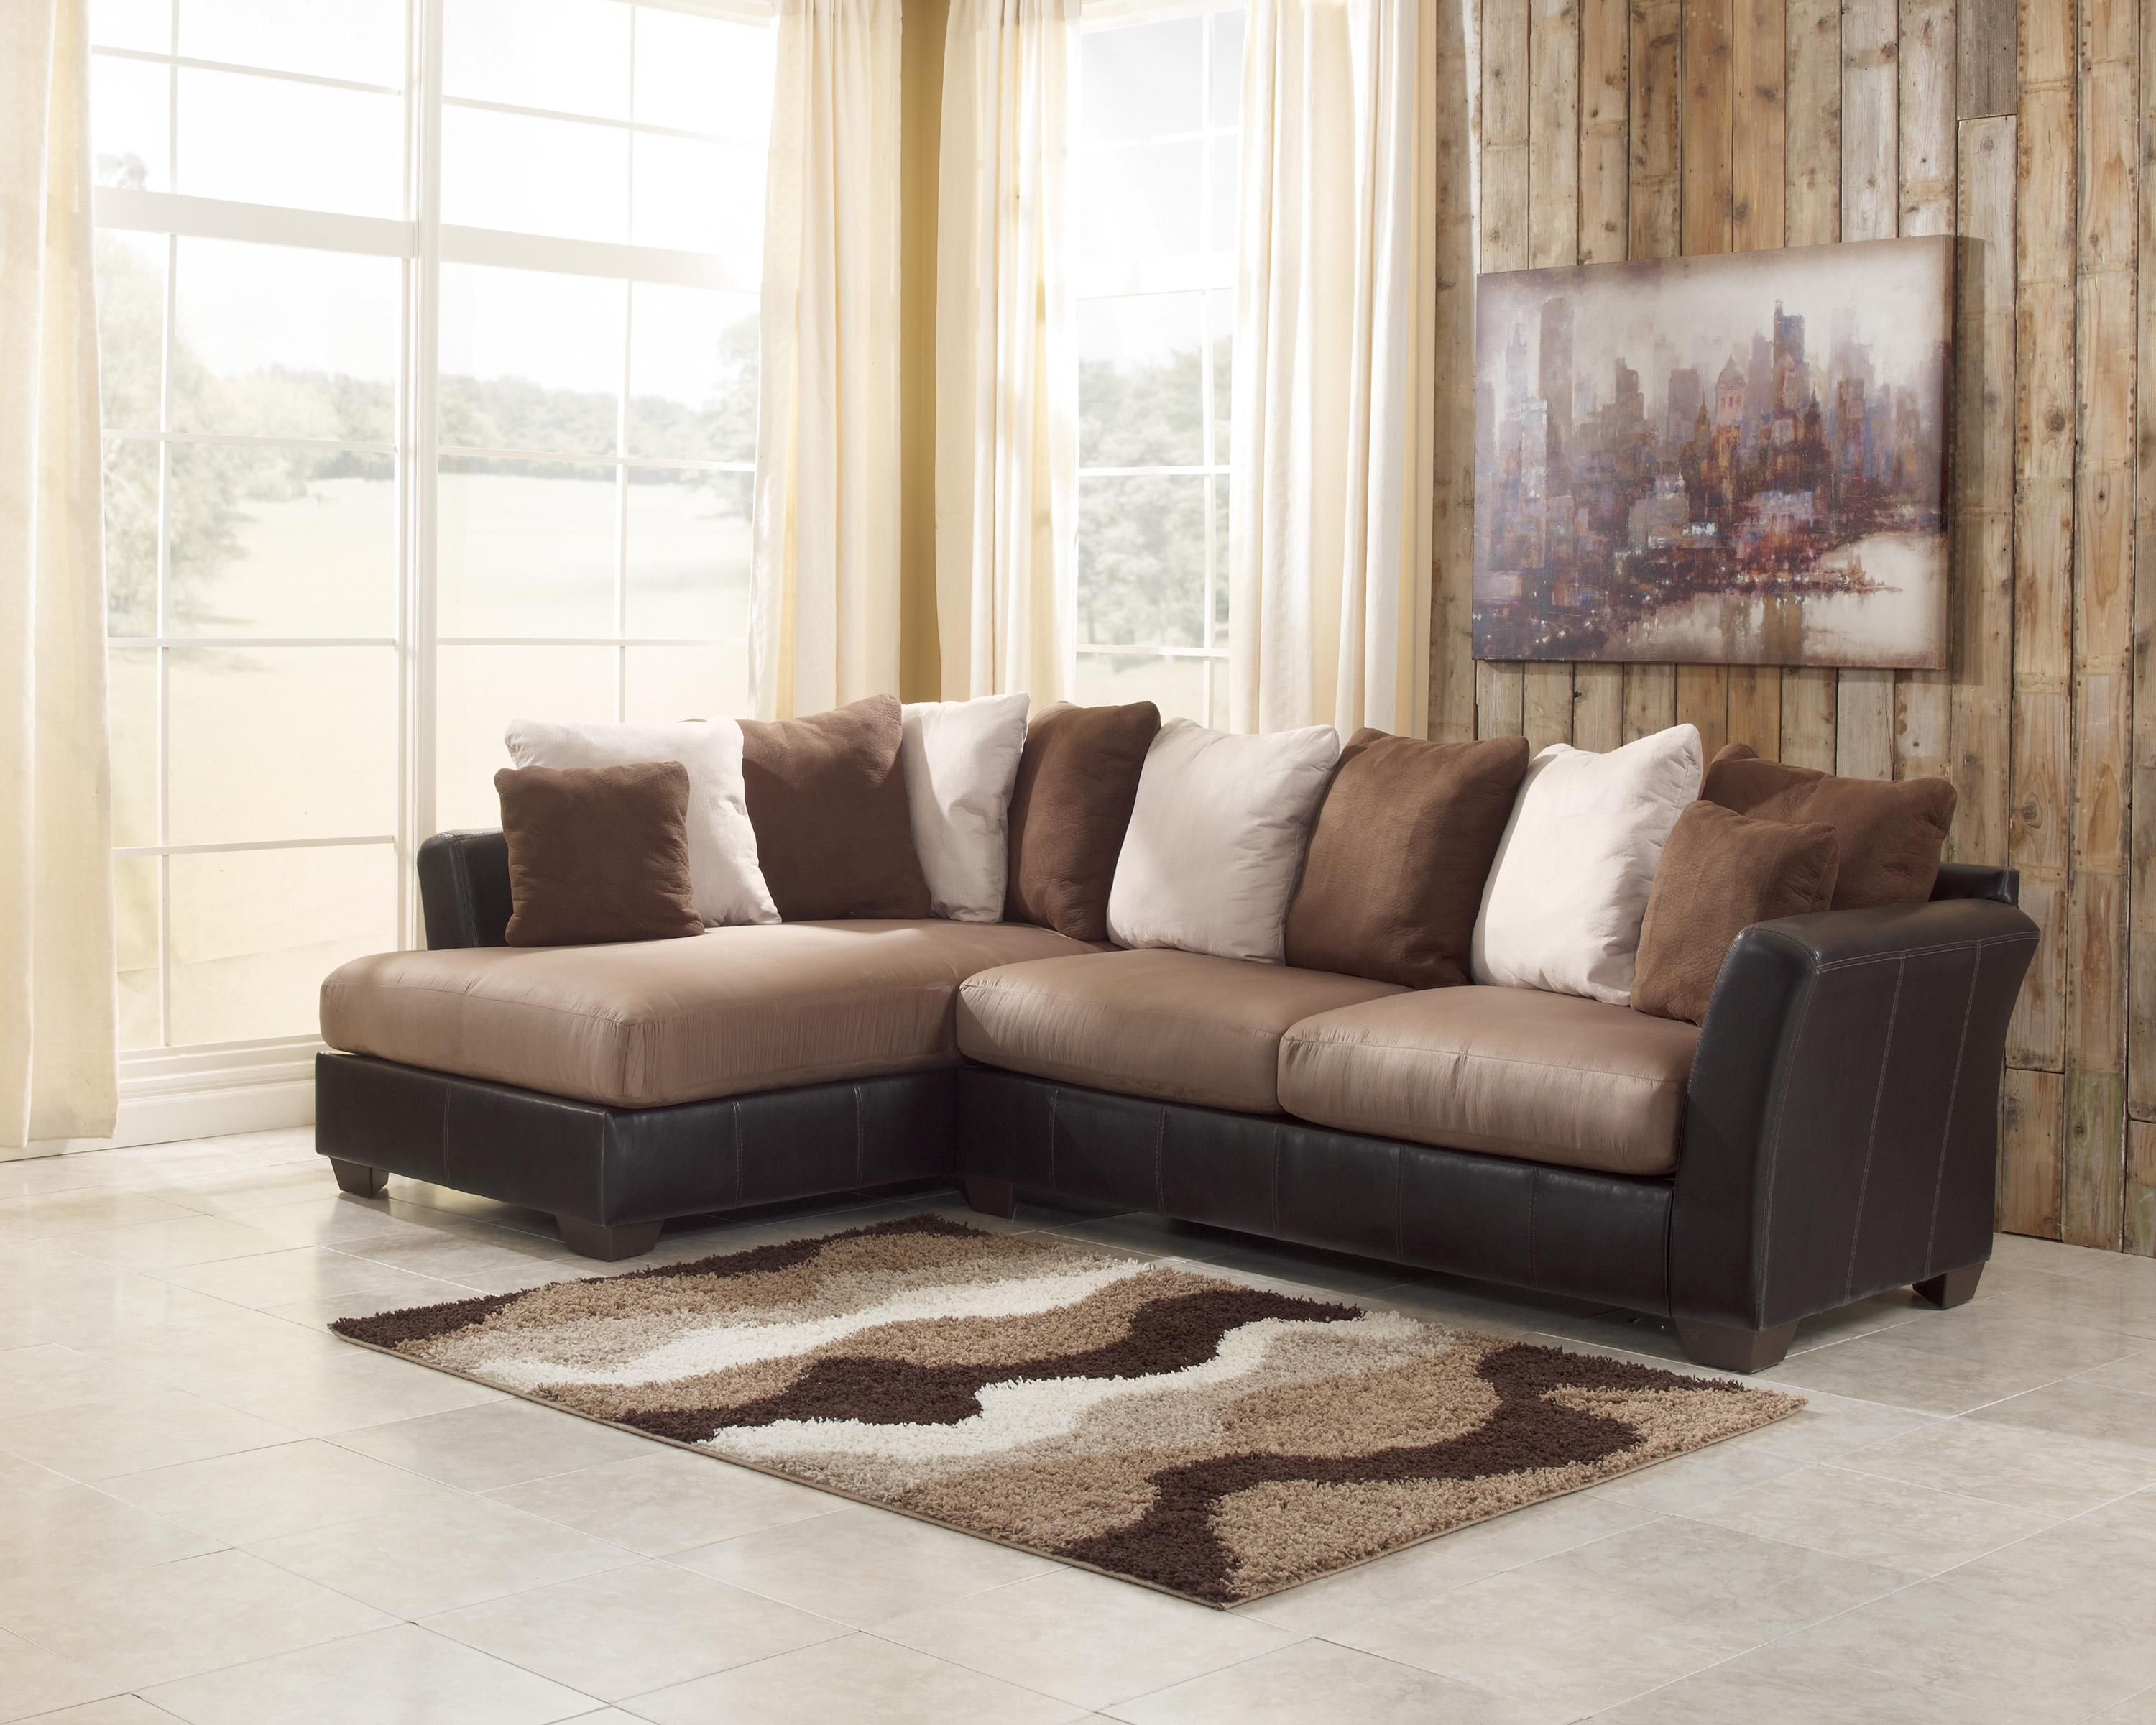 cool Fancy 2 Piece Sectional Sofa With Chaise 61 For Your Home